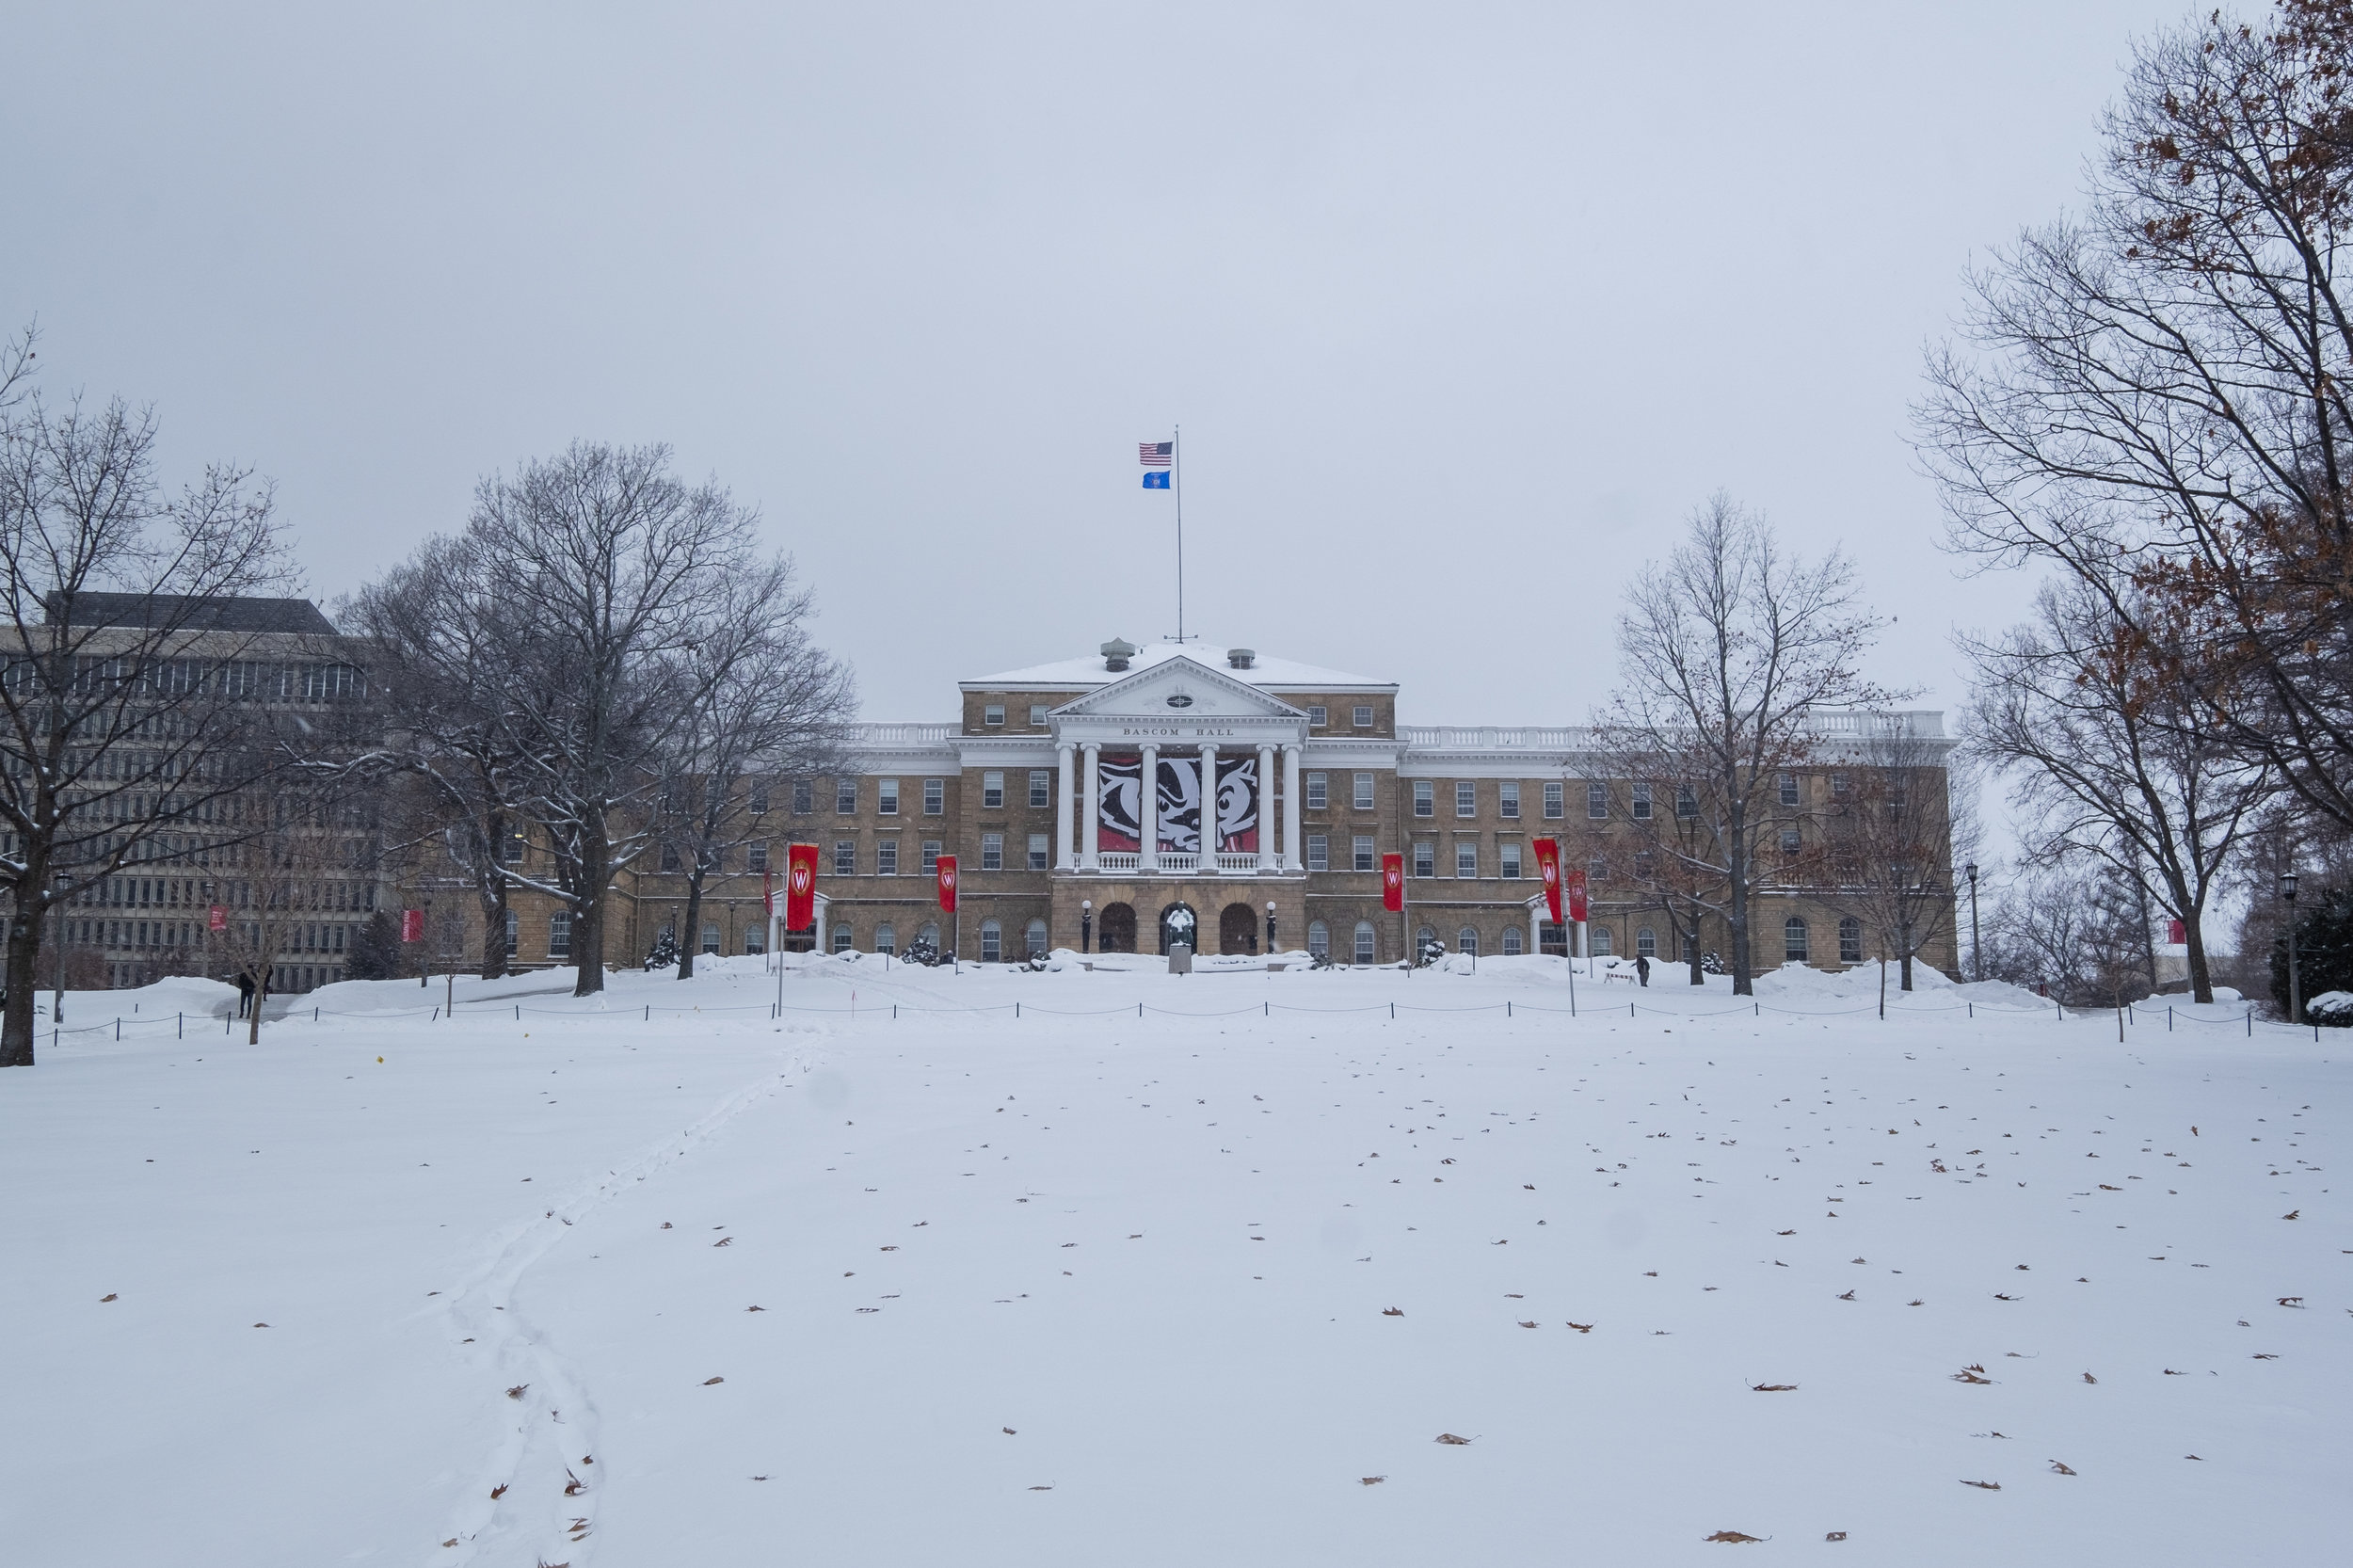 Exploring the University of Wisconsin